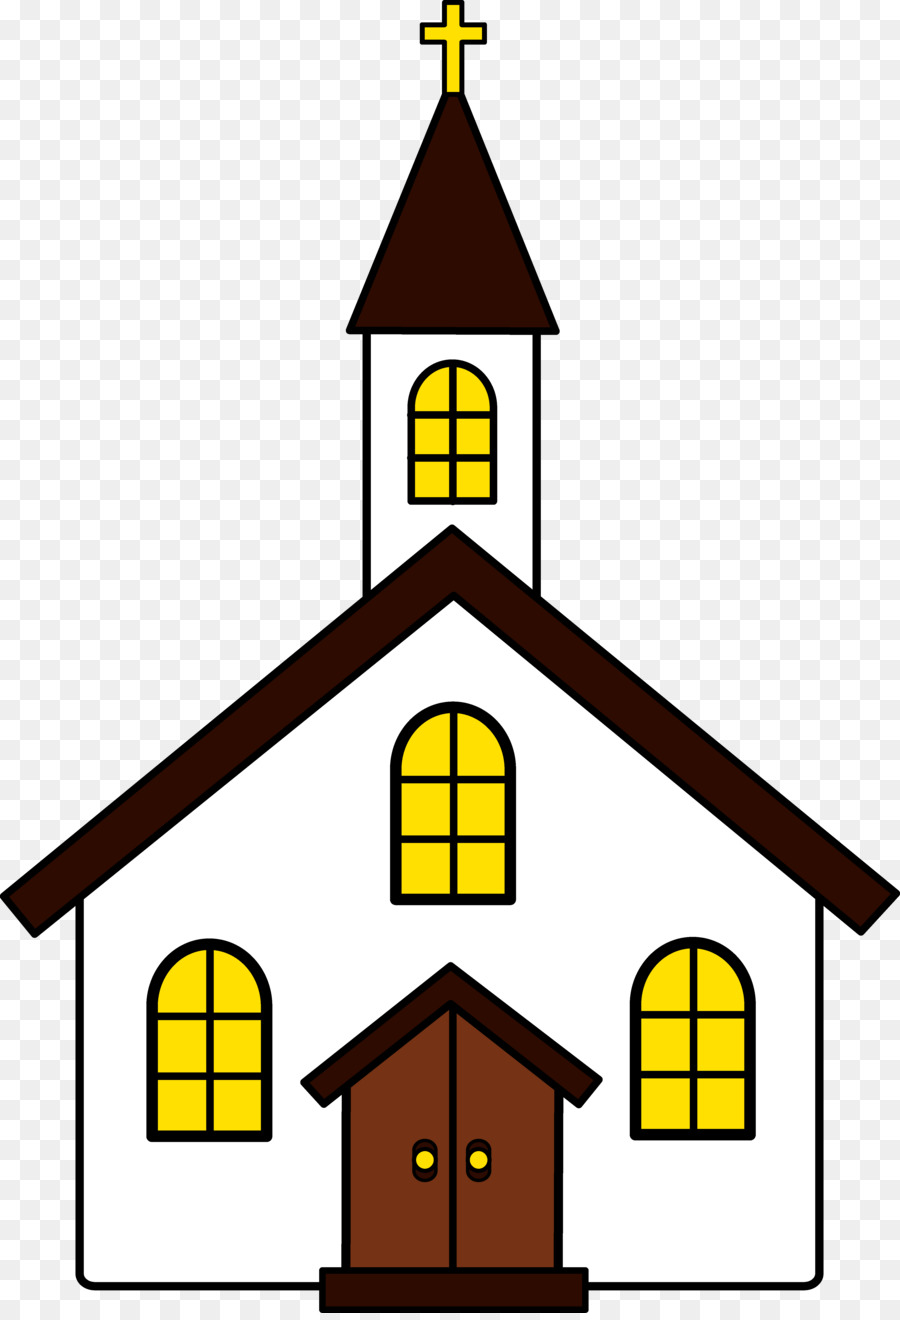 christian church cartoon baptist church clip art diaspora cliparts rh kisspng com church clipart images church cliparts family and friends